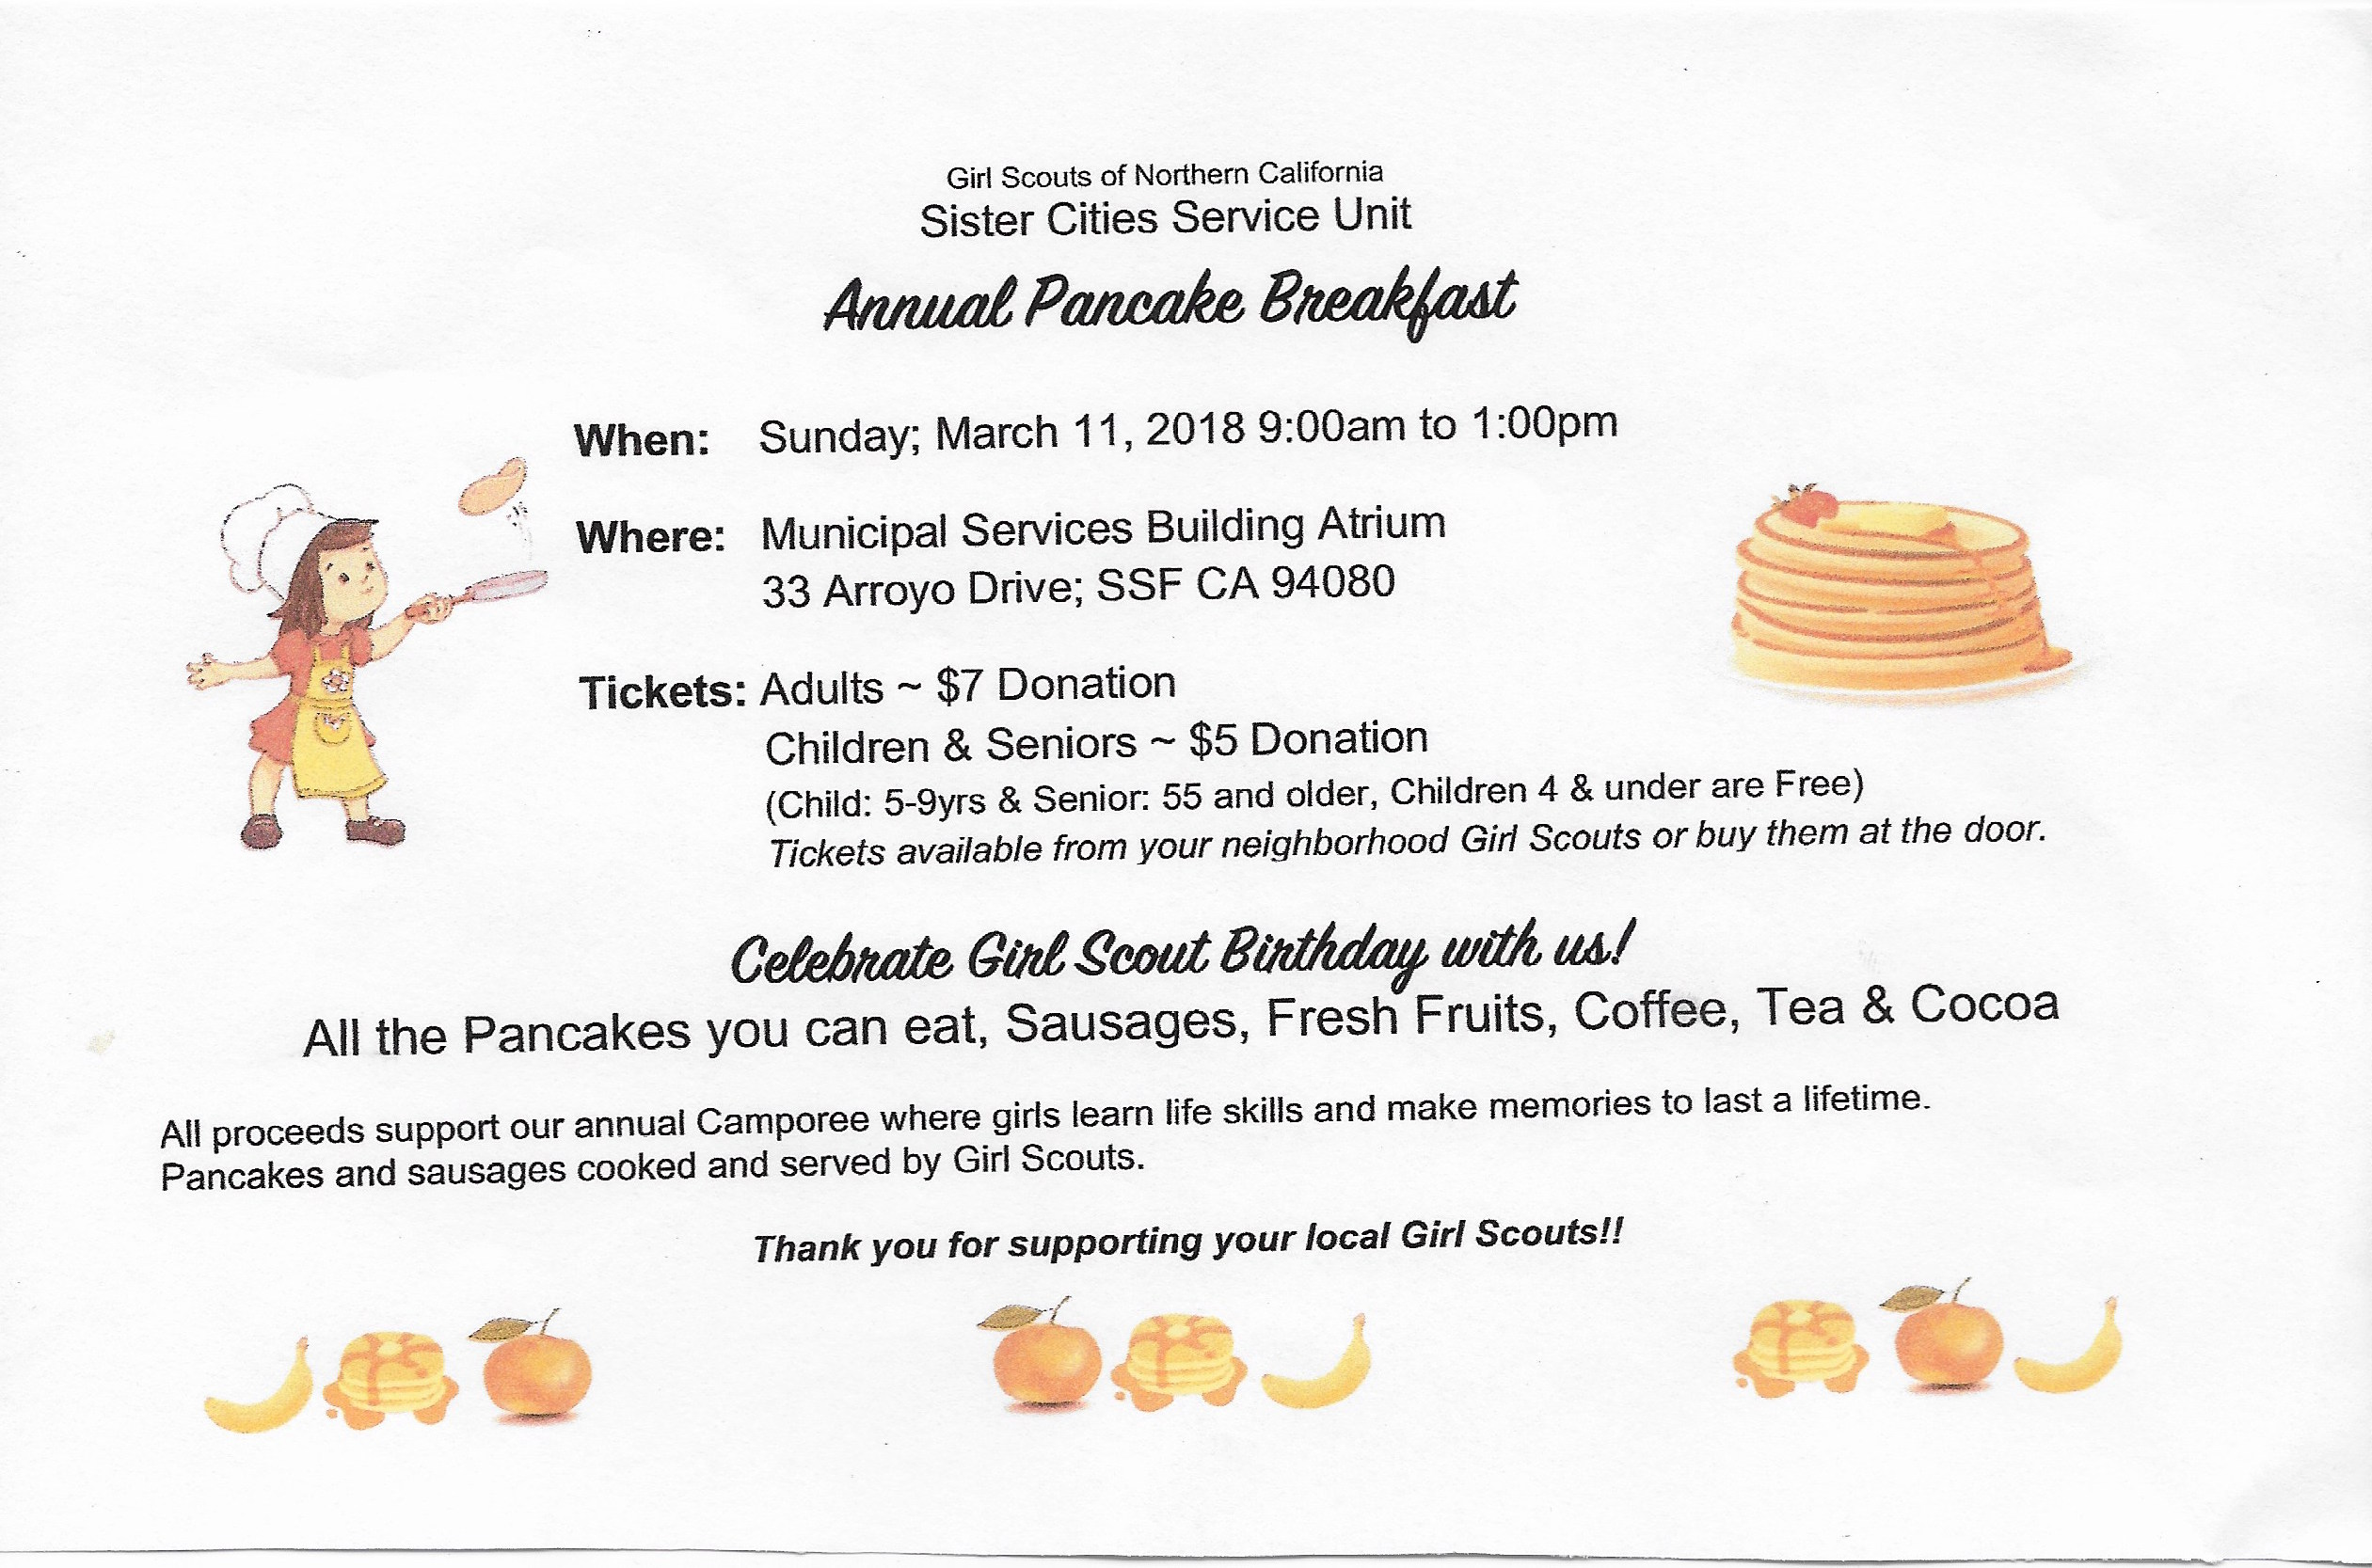 Girl Scout Pancake Breakfast Fundraiser Set For Sunday March 11th at the MSB